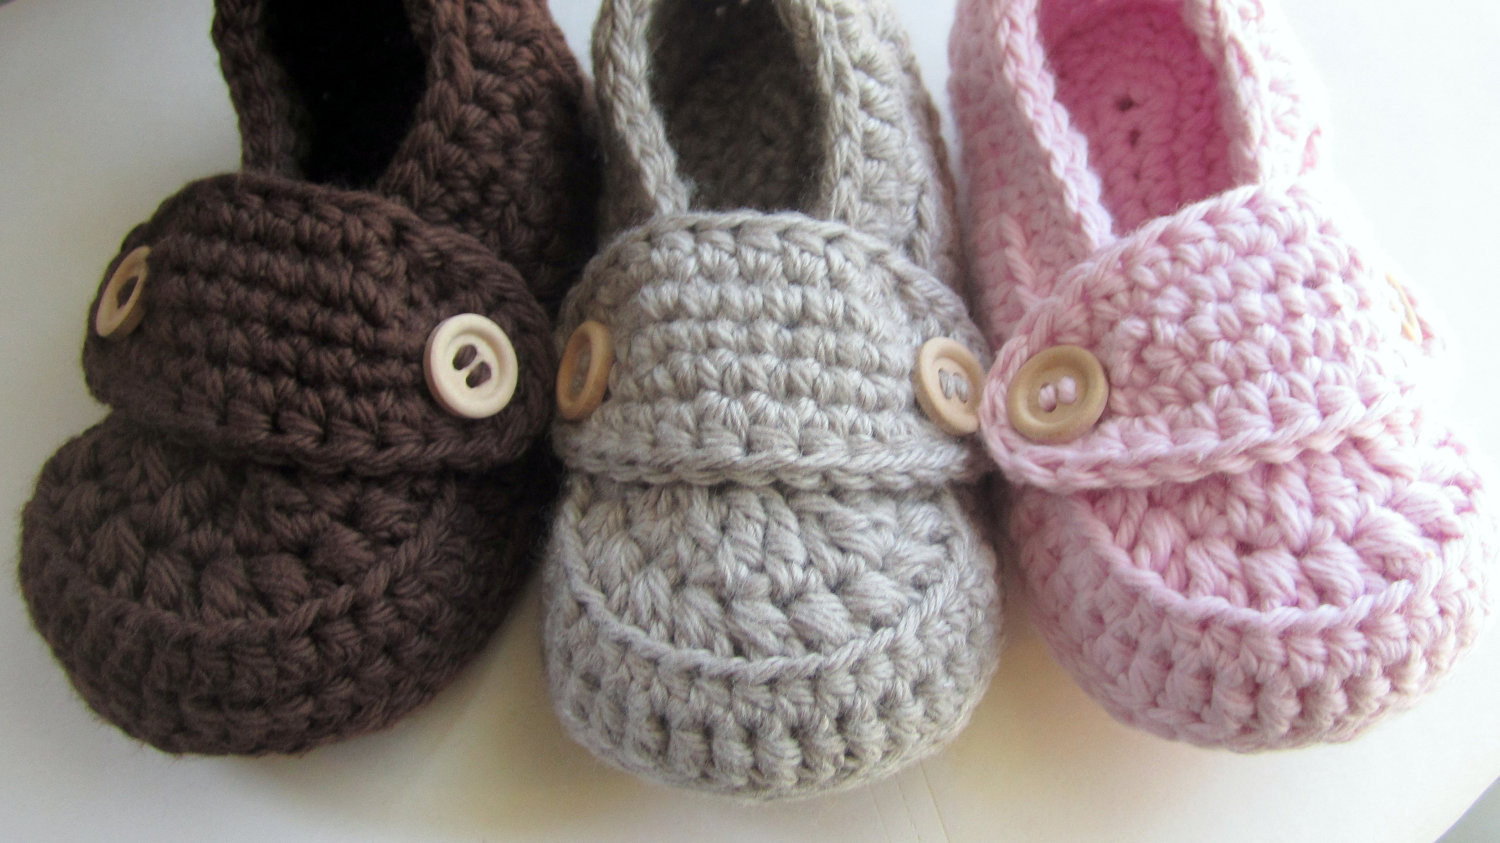 Beautiful Crochet Slippers for Baby Crochet Baby socks Of Beautiful Crochet Baby Booties Patterns for Sweet Little Feet Crochet Baby socks